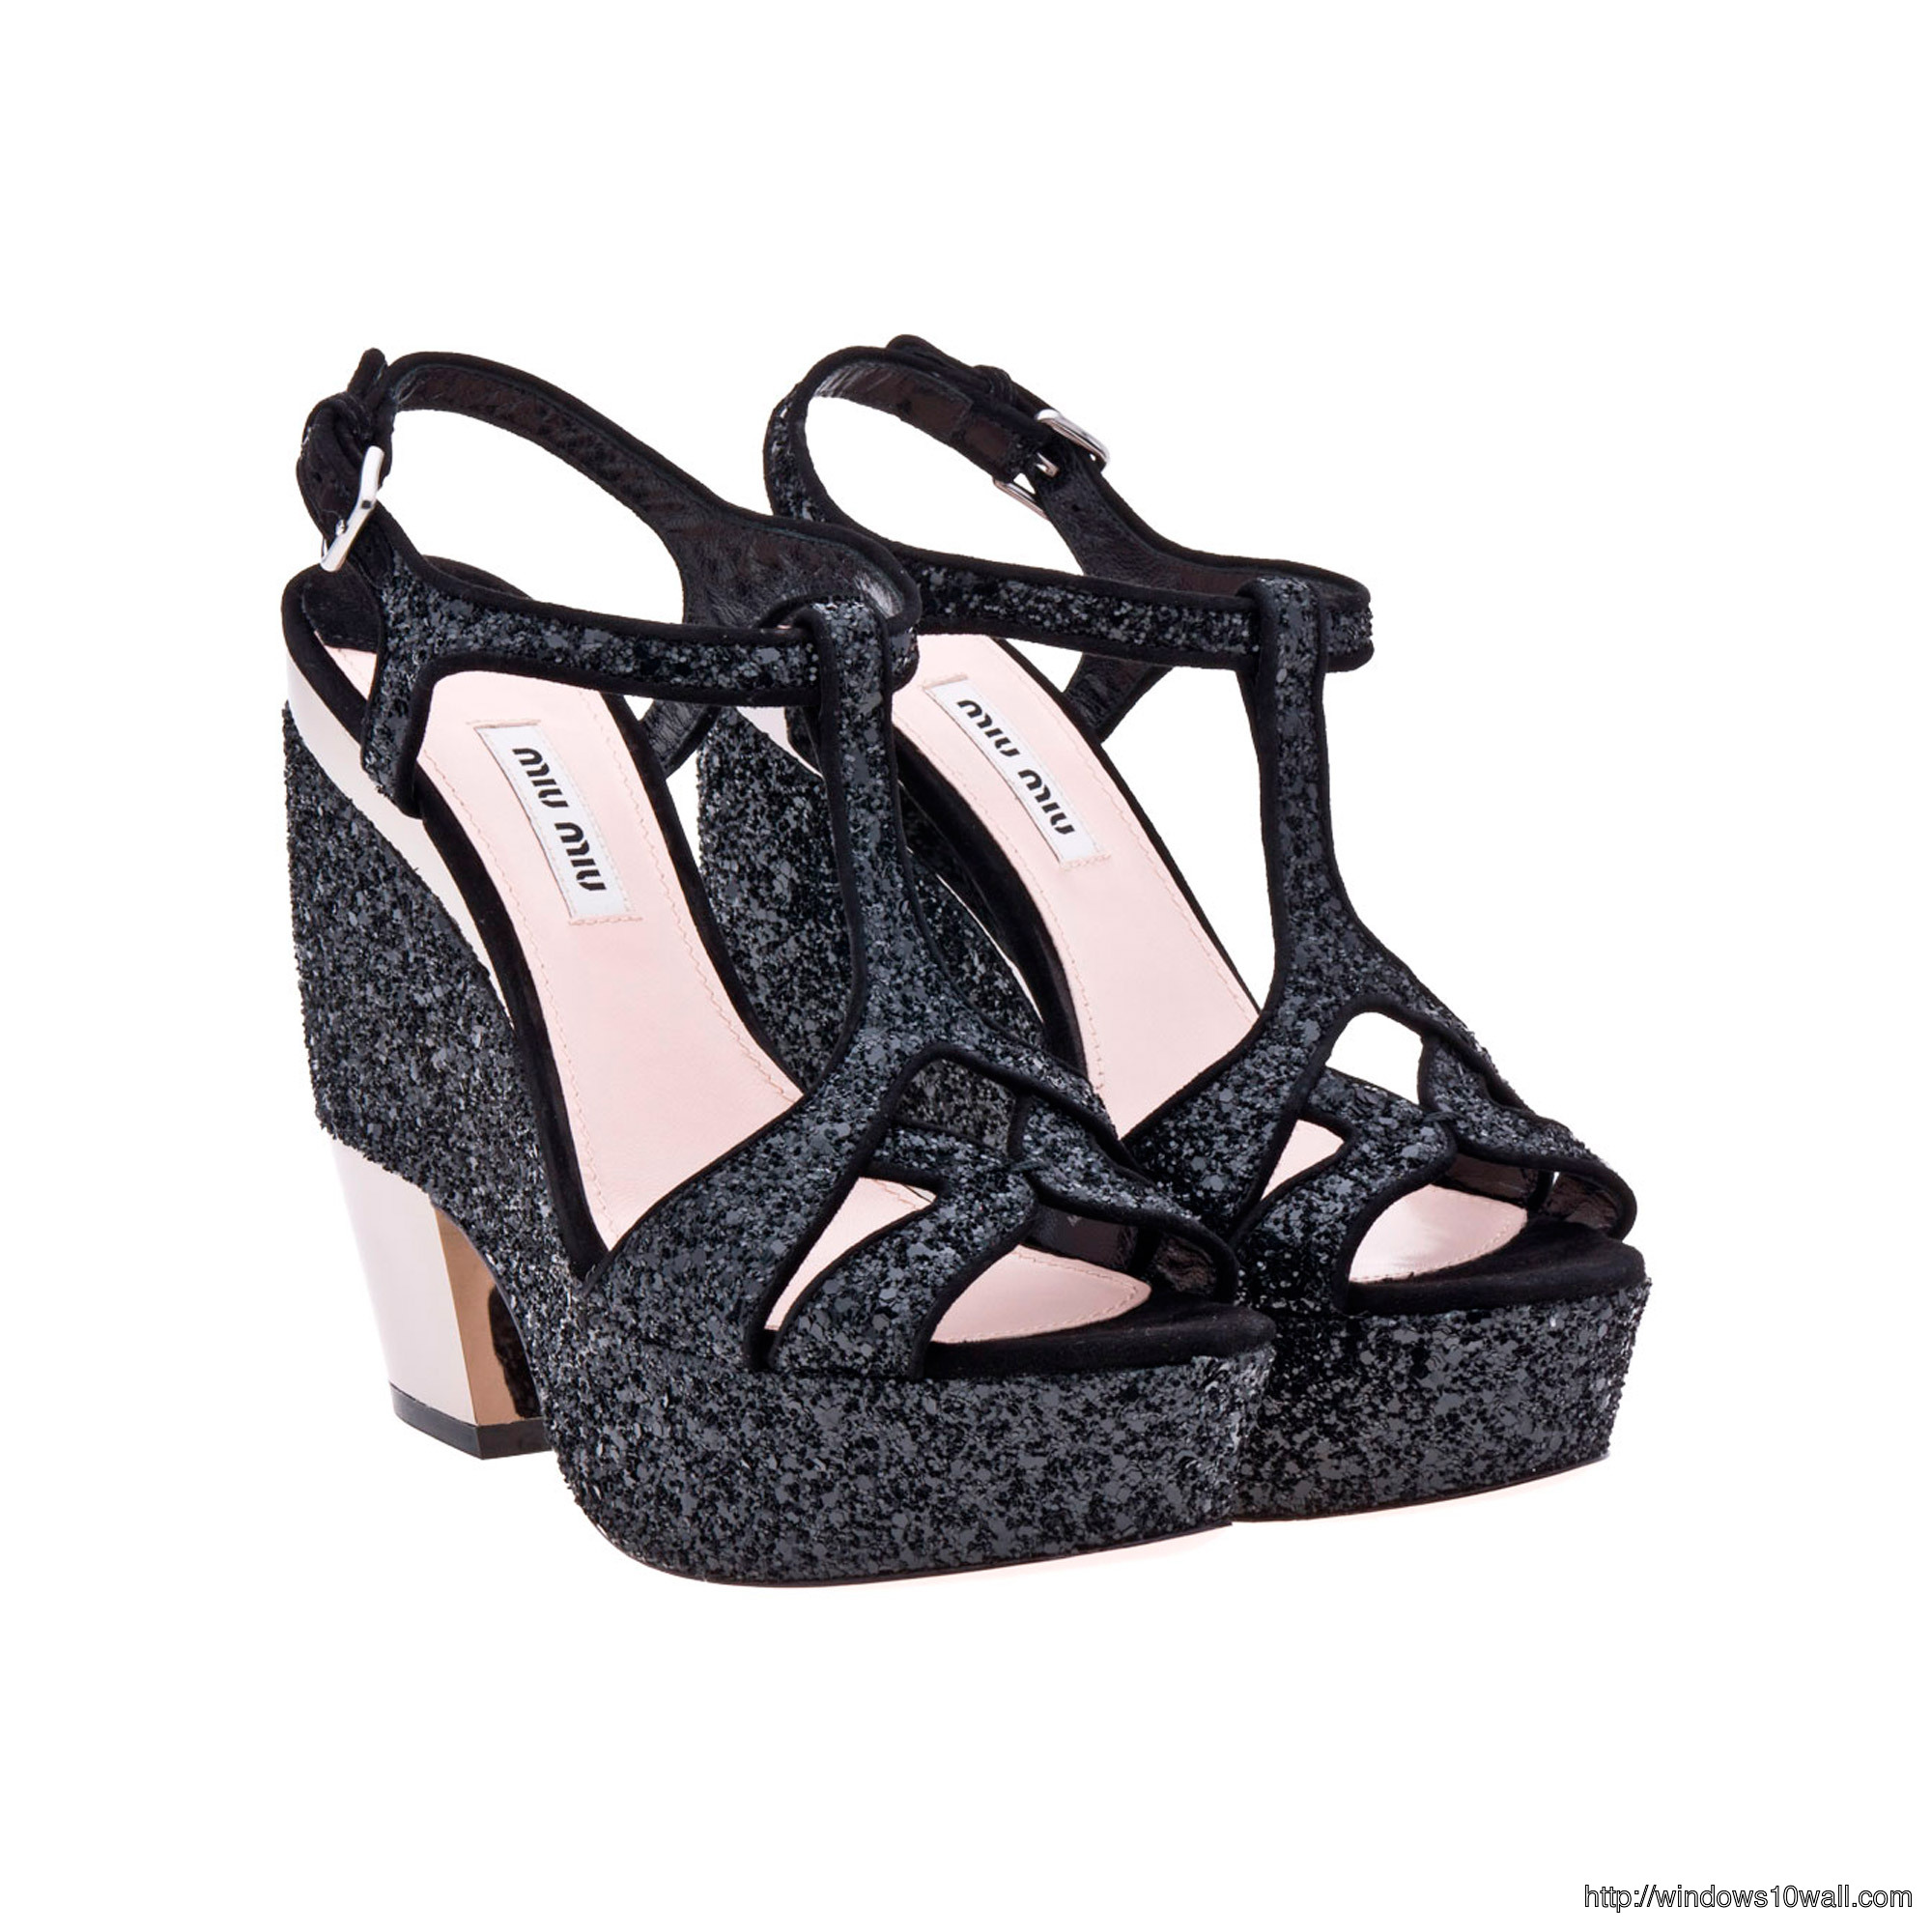 Miu-Miu-Glitter-Wedge-Sandals-in-Black-background-wallpaper